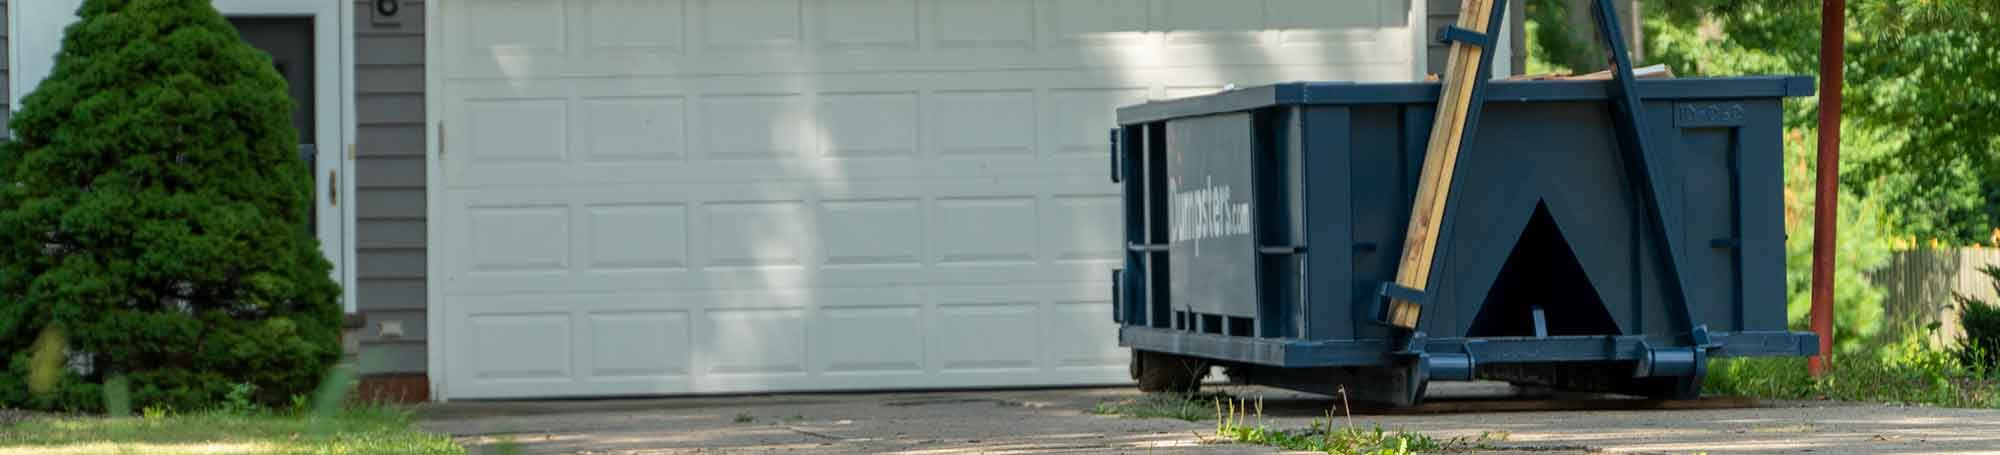 Roll Off Dumpster in Residential Driveway in Front of Grey House.